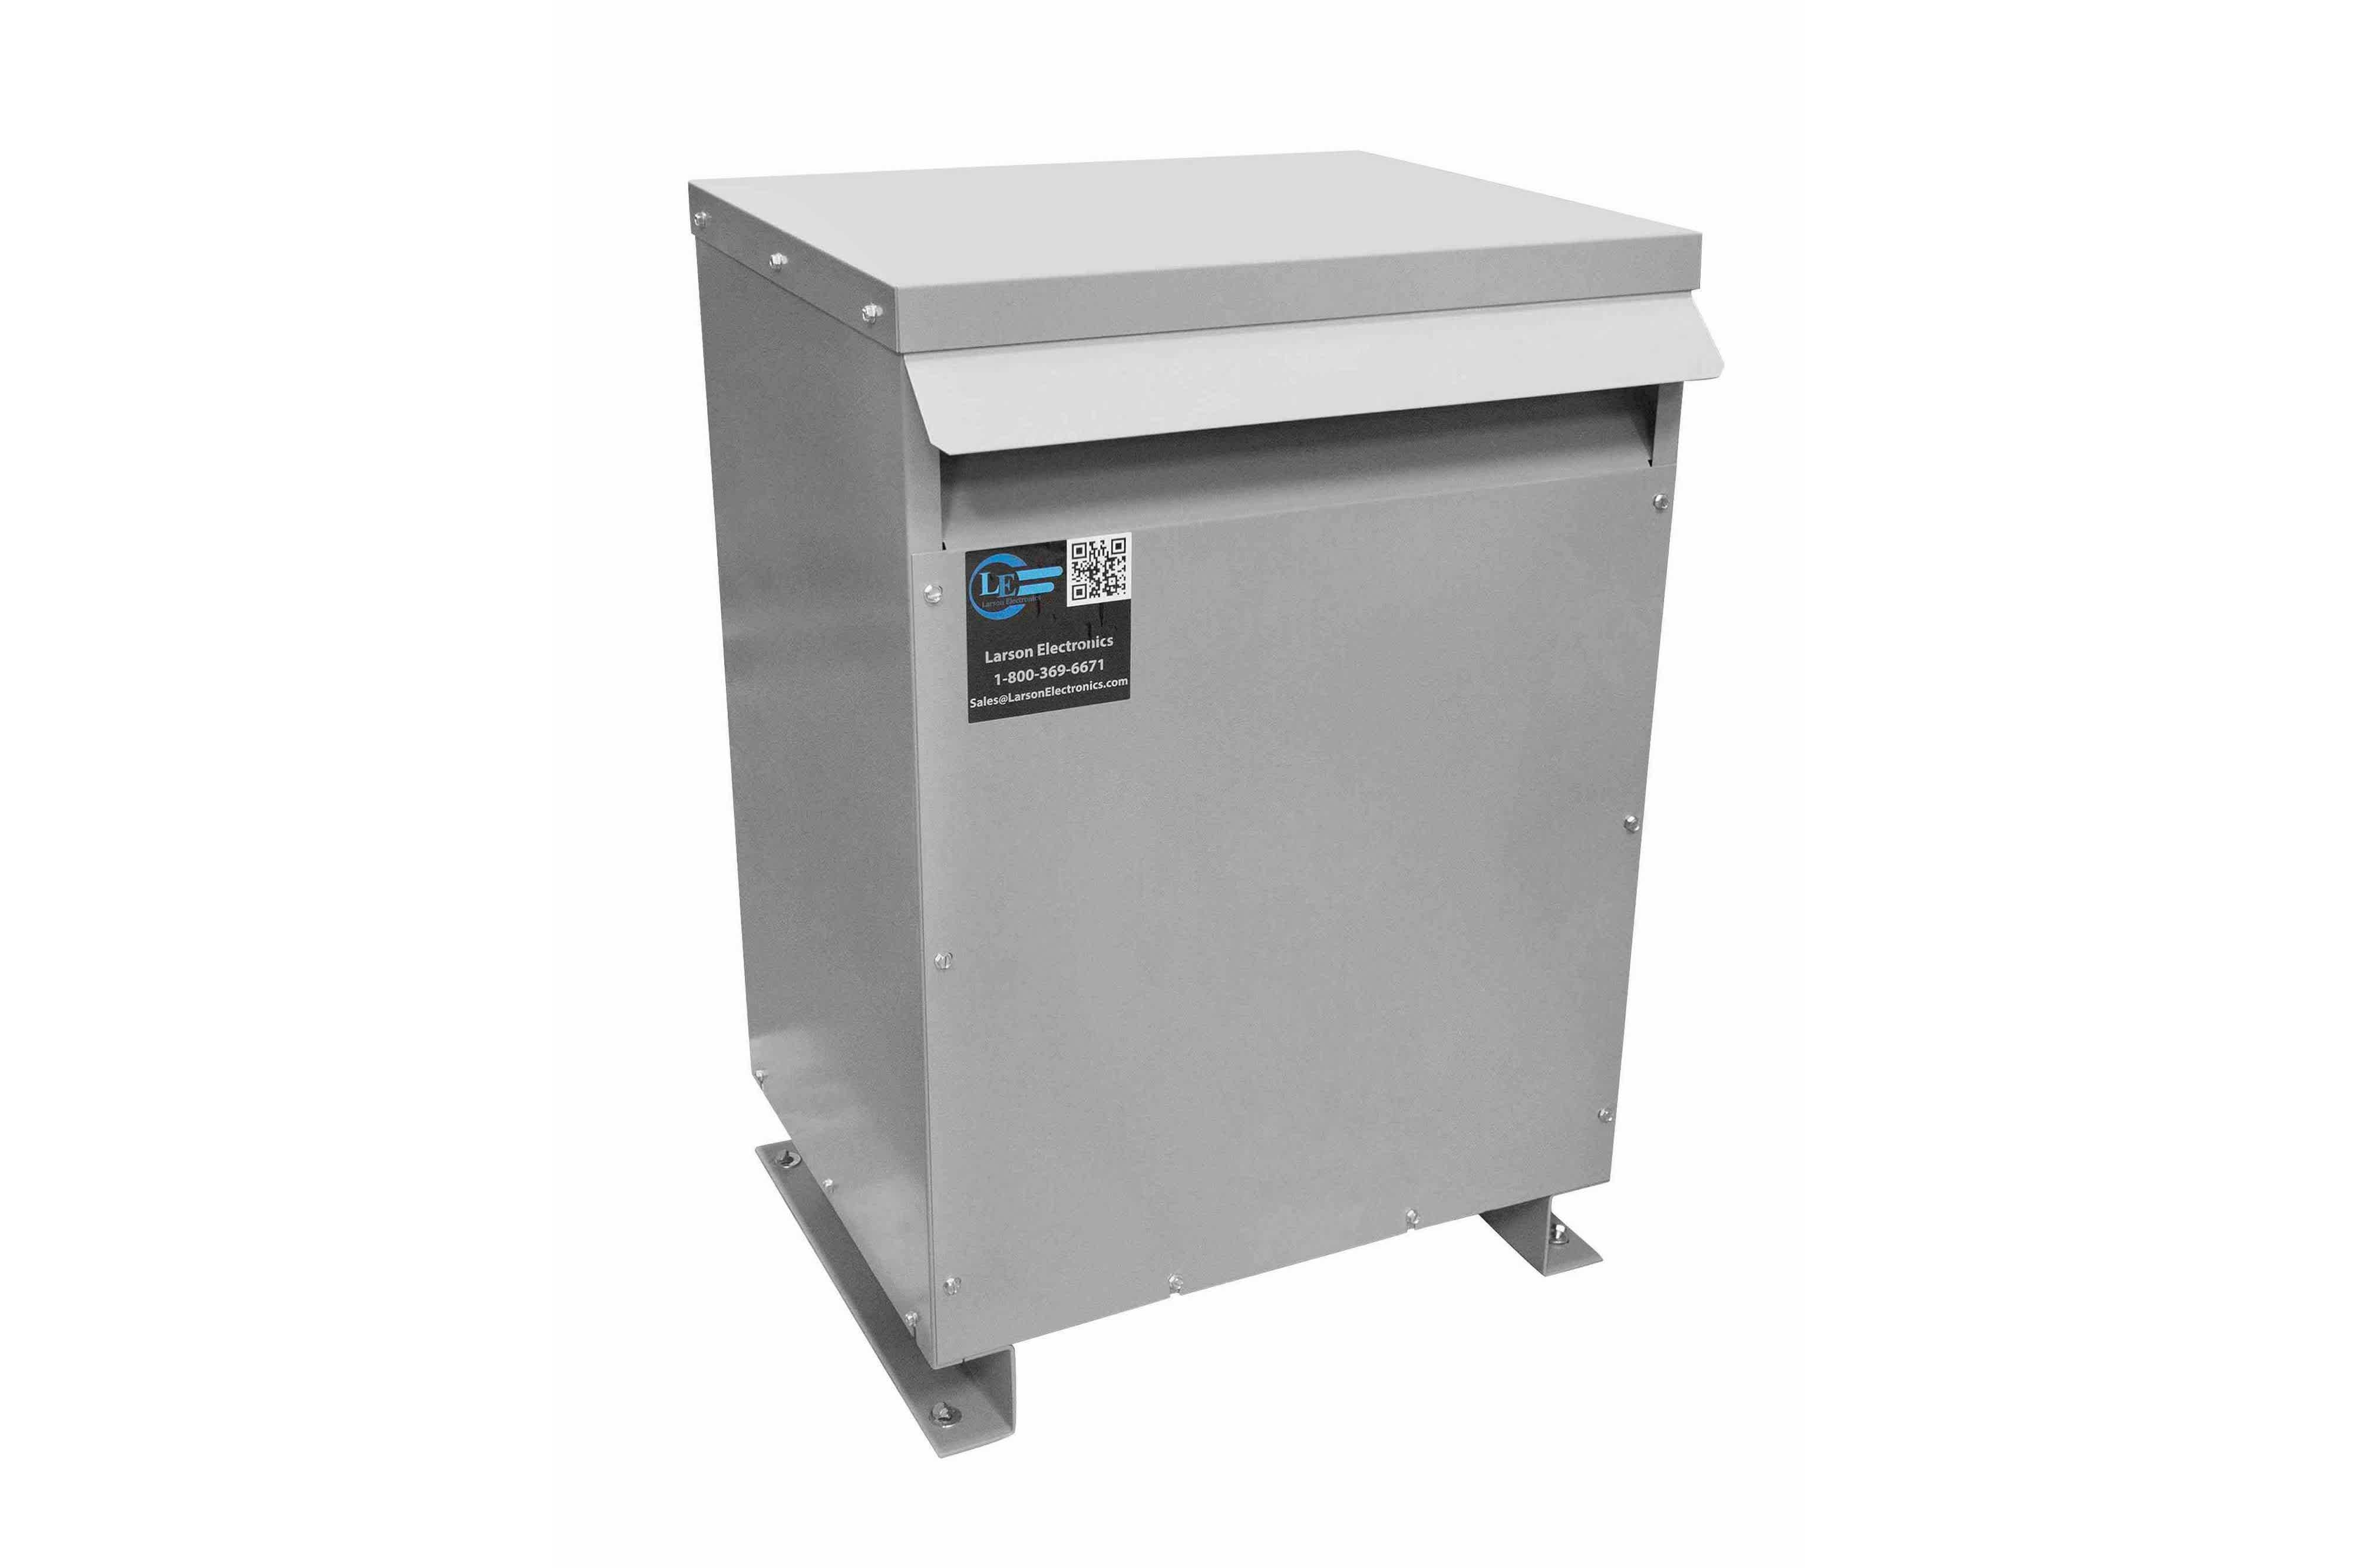 18 kVA 3PH Isolation Transformer, 480V Delta Primary, 480V Delta Secondary, N3R, Ventilated, 60 Hz